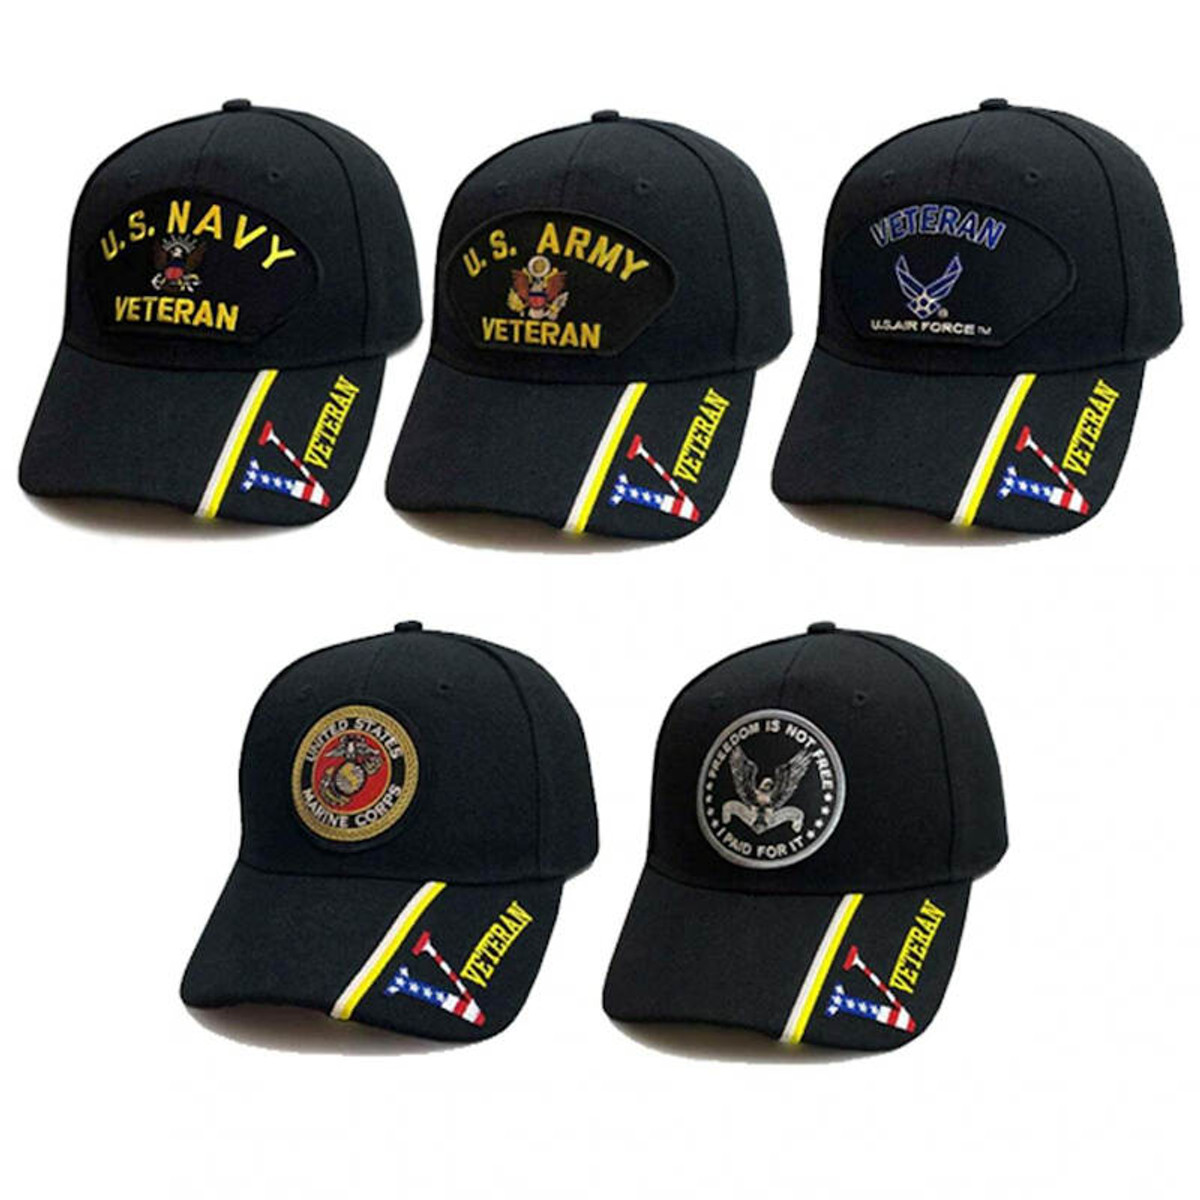 army navy air force marines veteran coast guard  military service hats shown as suggested items for 6-month veteran subscription gift box